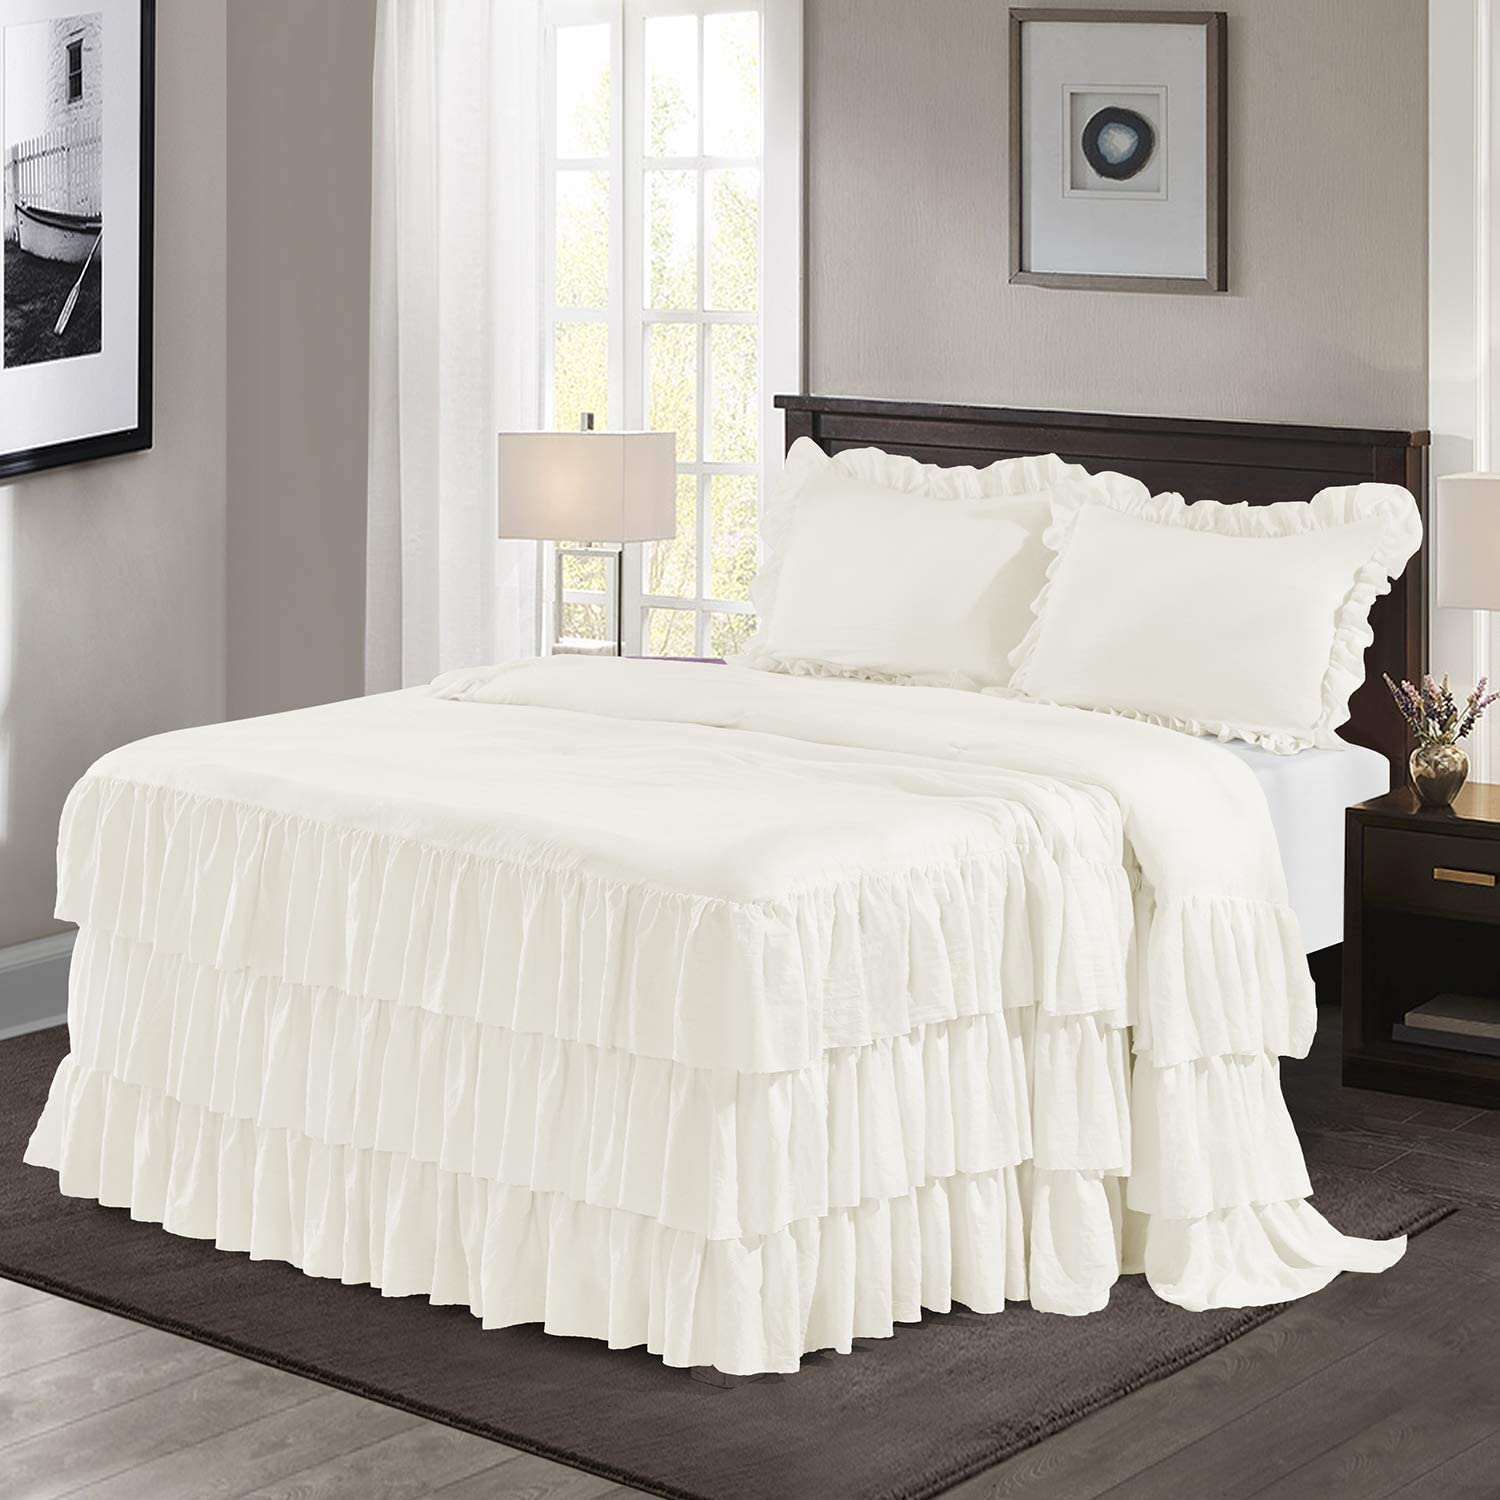 HIG 3 Piece Ruffle Skirt Bedspread Set Queen-Ivory Color 30